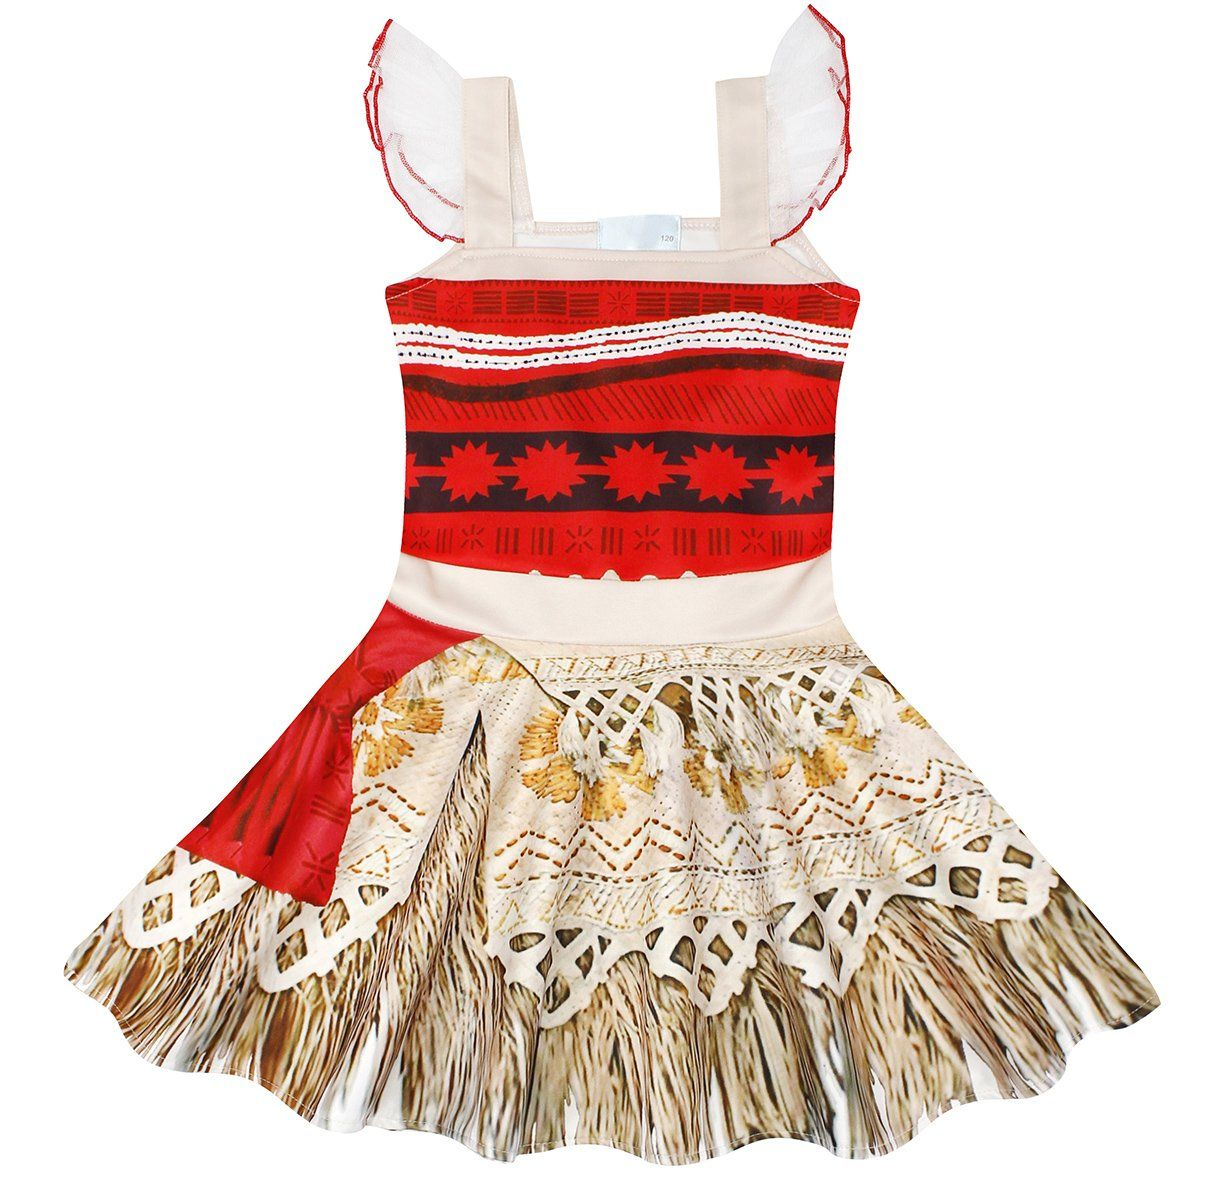 AmzBarley Moana Dress for Girls Halloween Costumes Cosplay